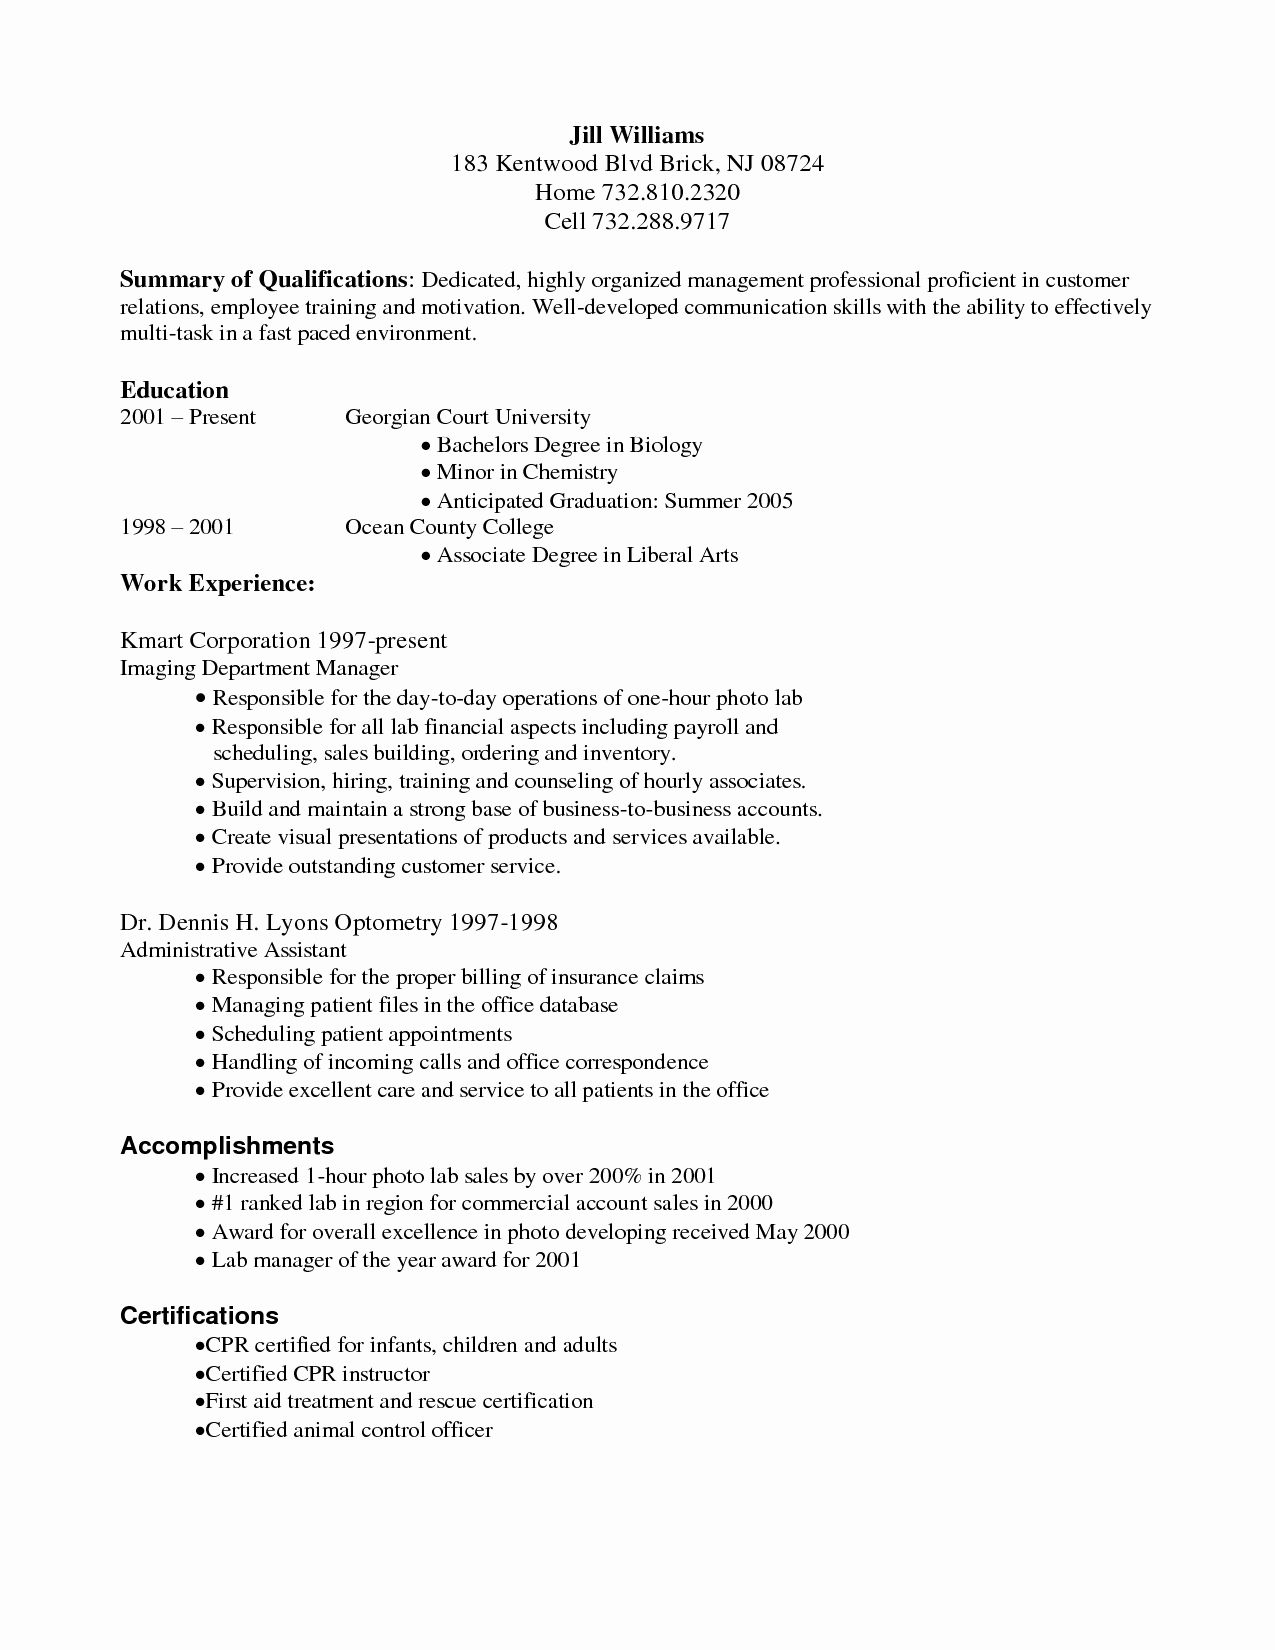 23 Medical Coding Resume Examples In 2020 Medical Coder Resume